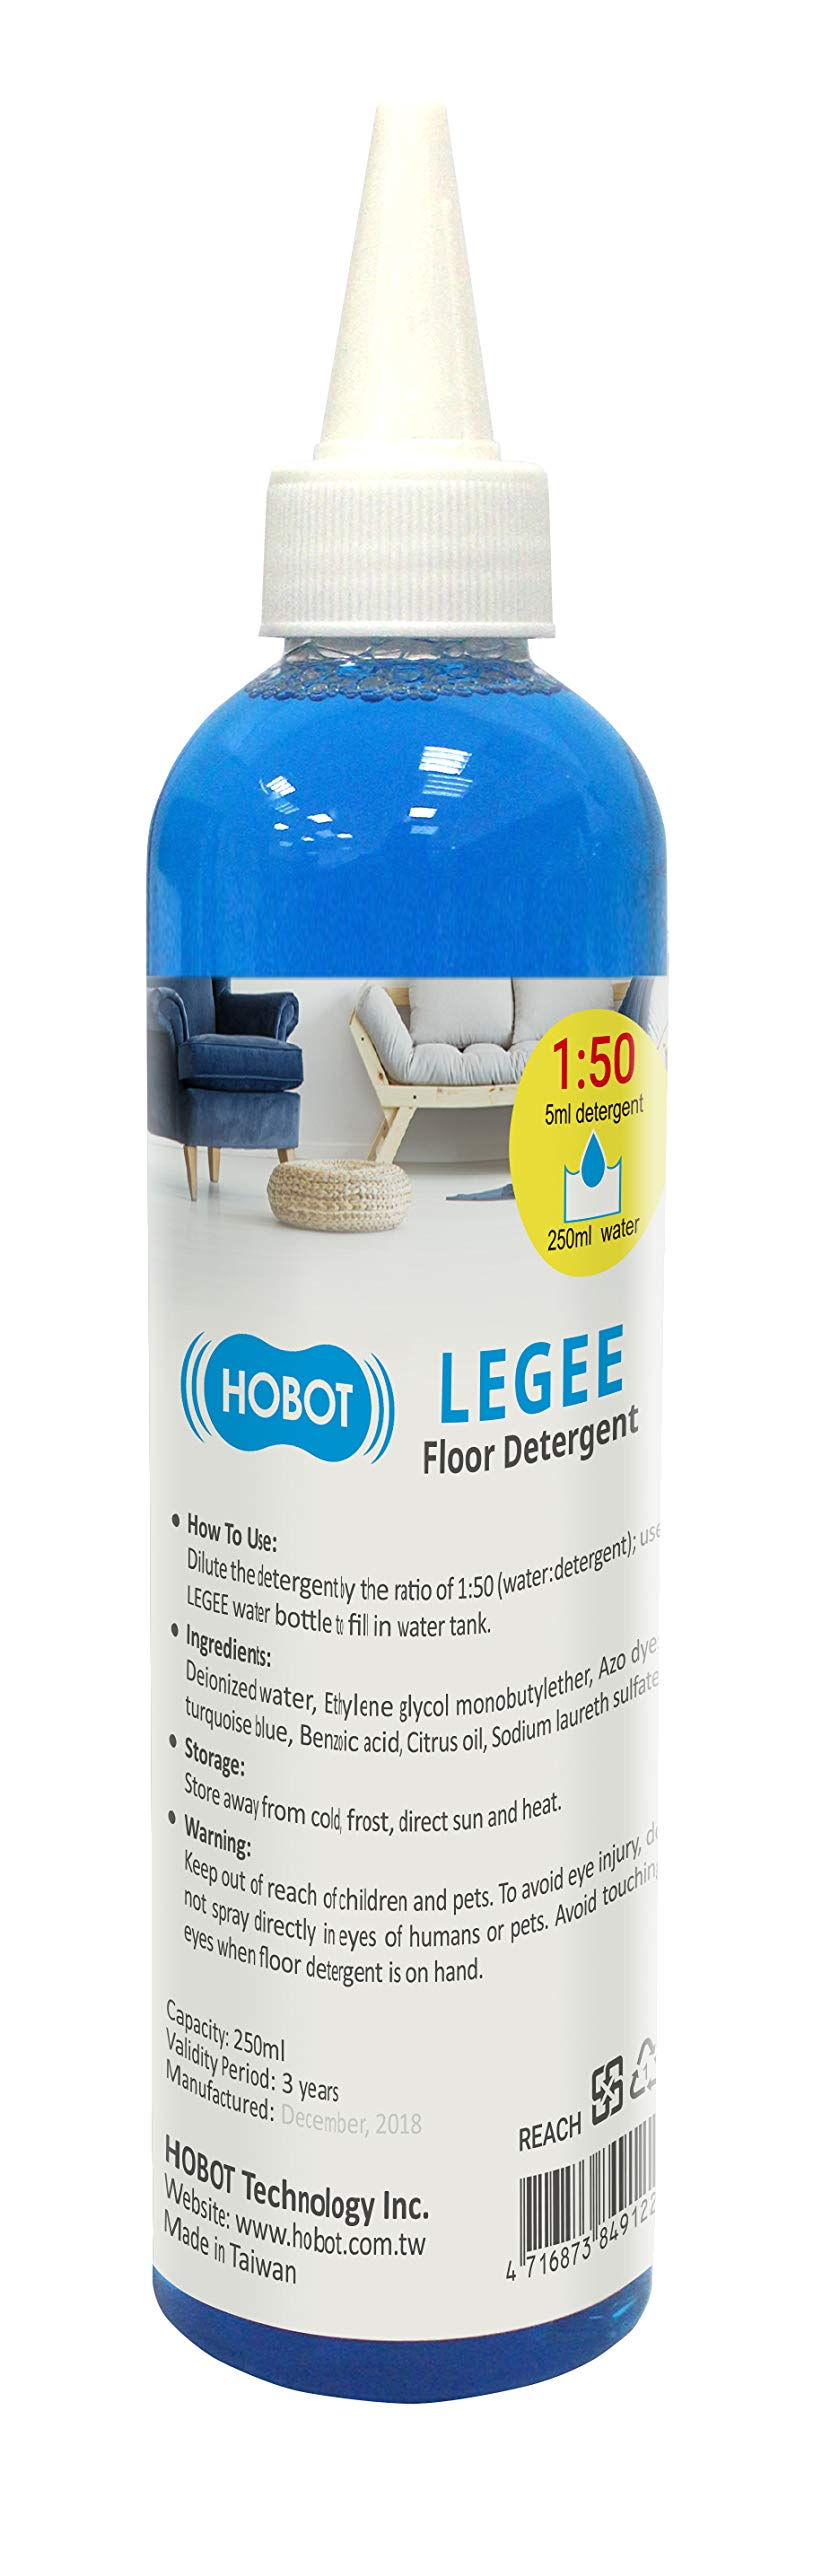 Floor Window Detergent Cleaner for HOBOT and LEGEE